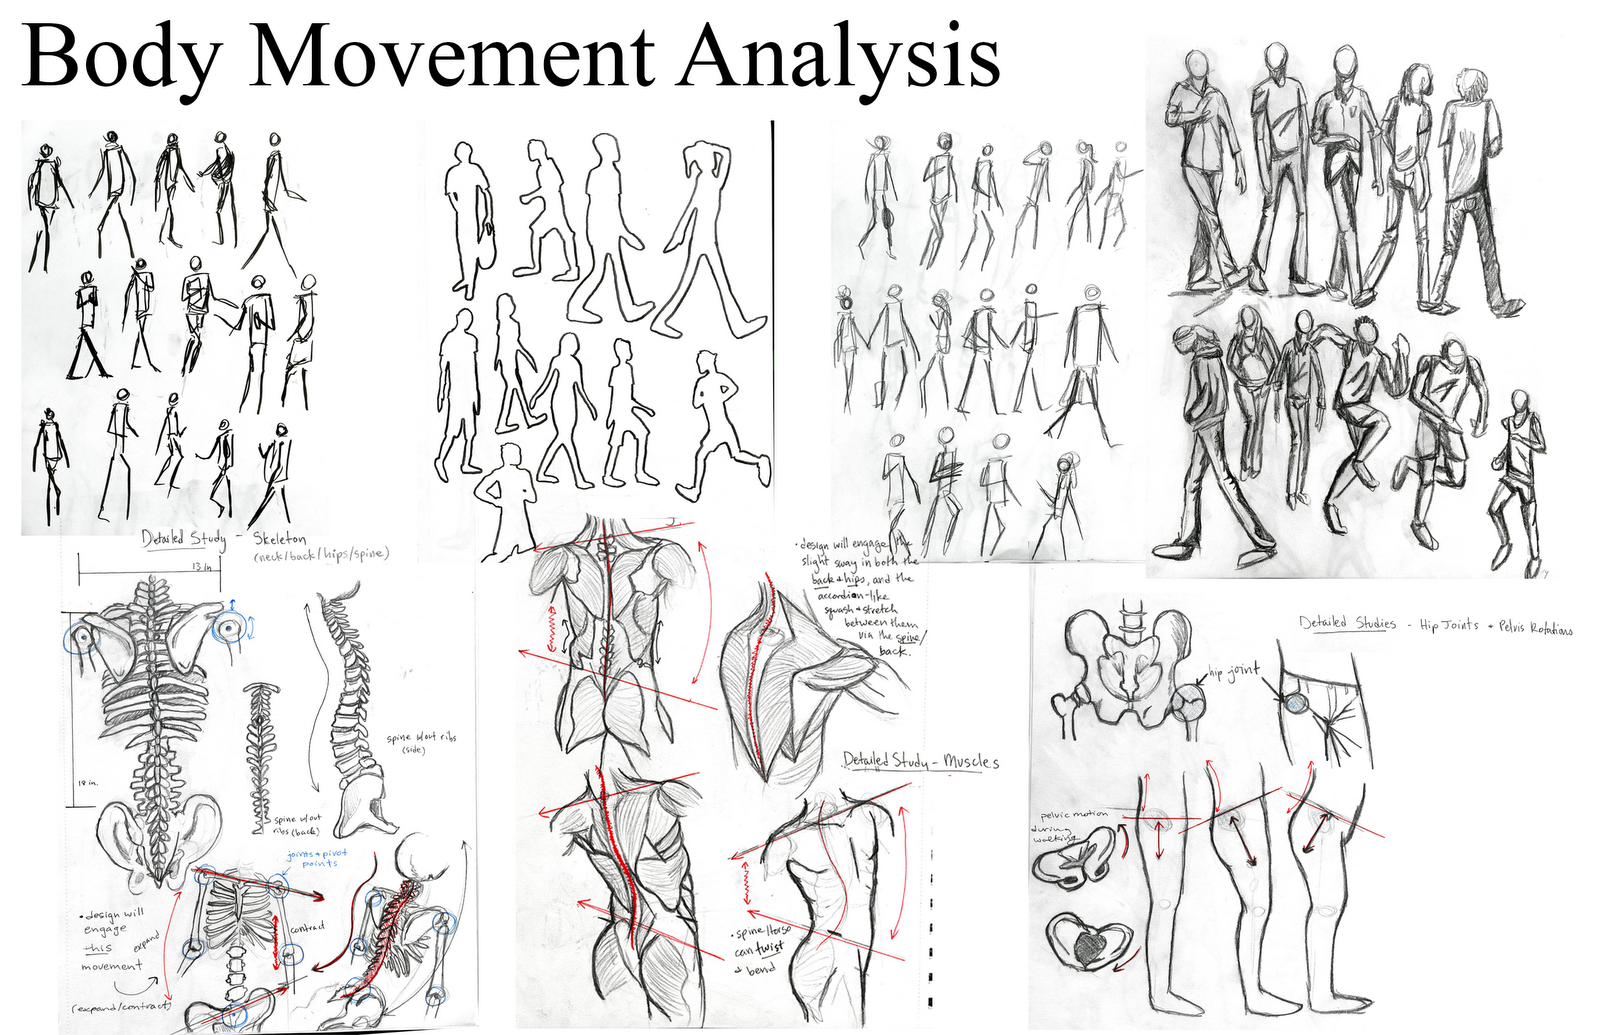 Quotes about Body Movement (54 quotes)